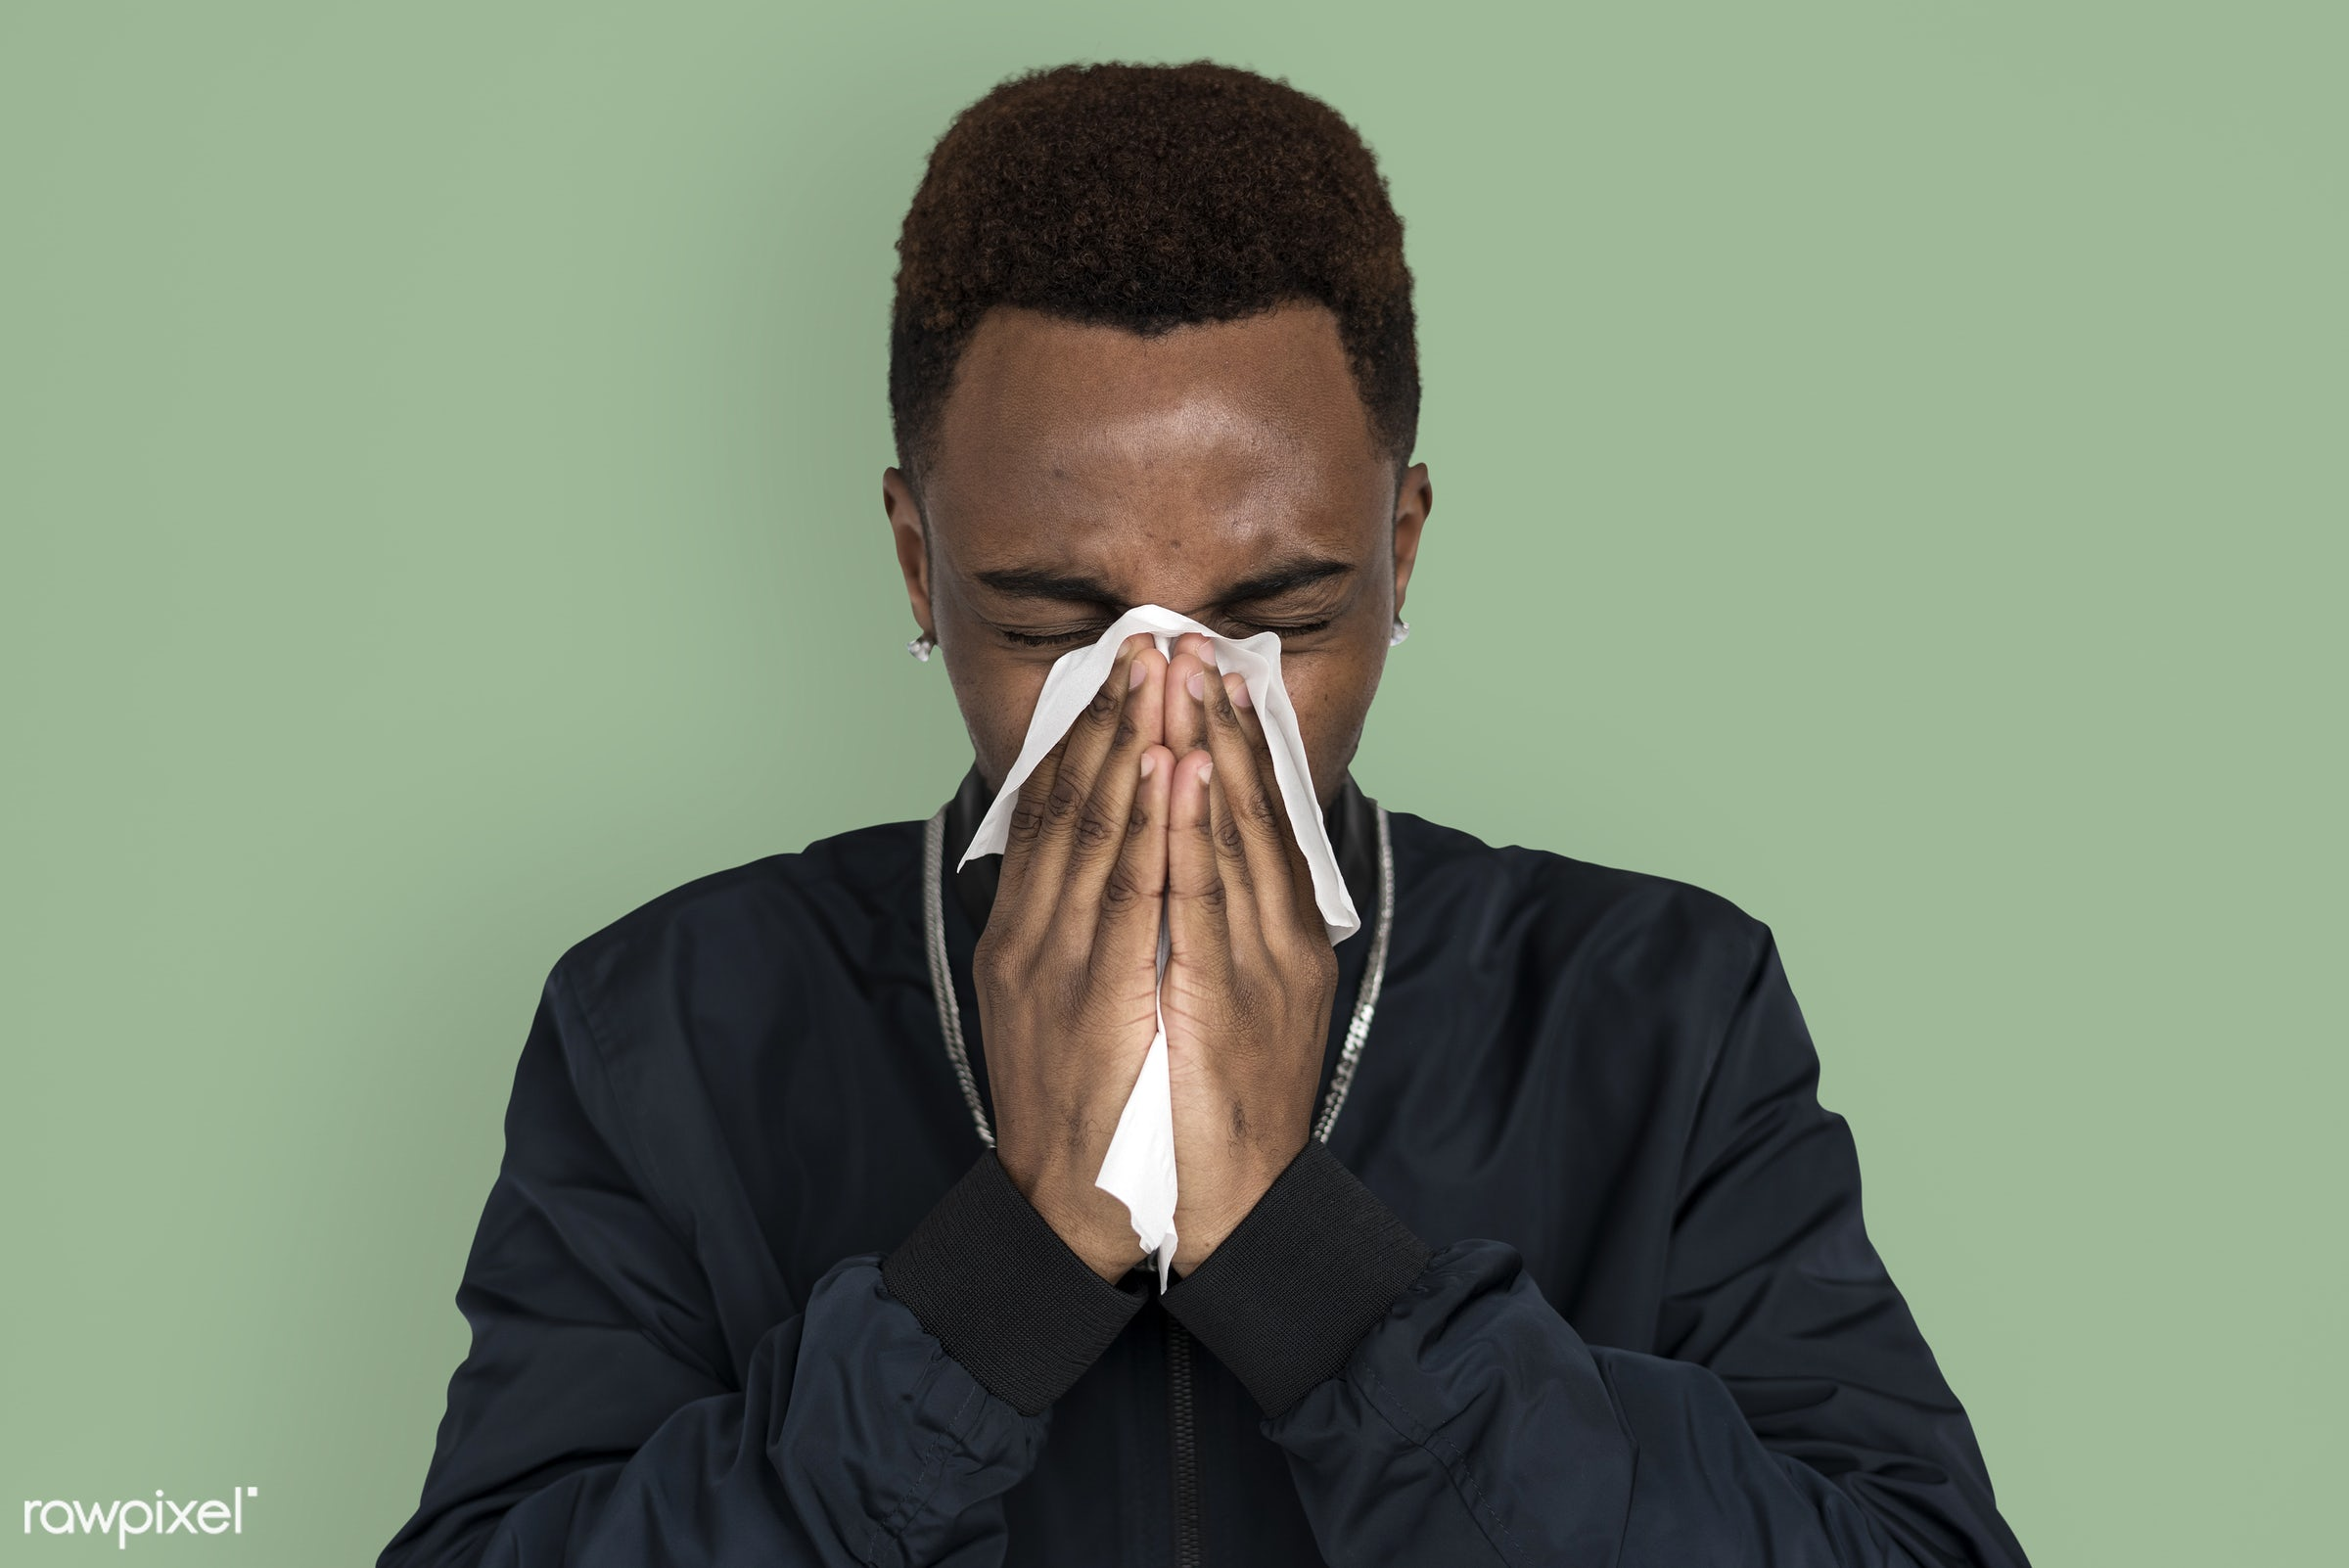 studio, model, person, african, people, race, style, solo, nosebleed, illness, lifestyle, casual, man, isolated, guy, male,...